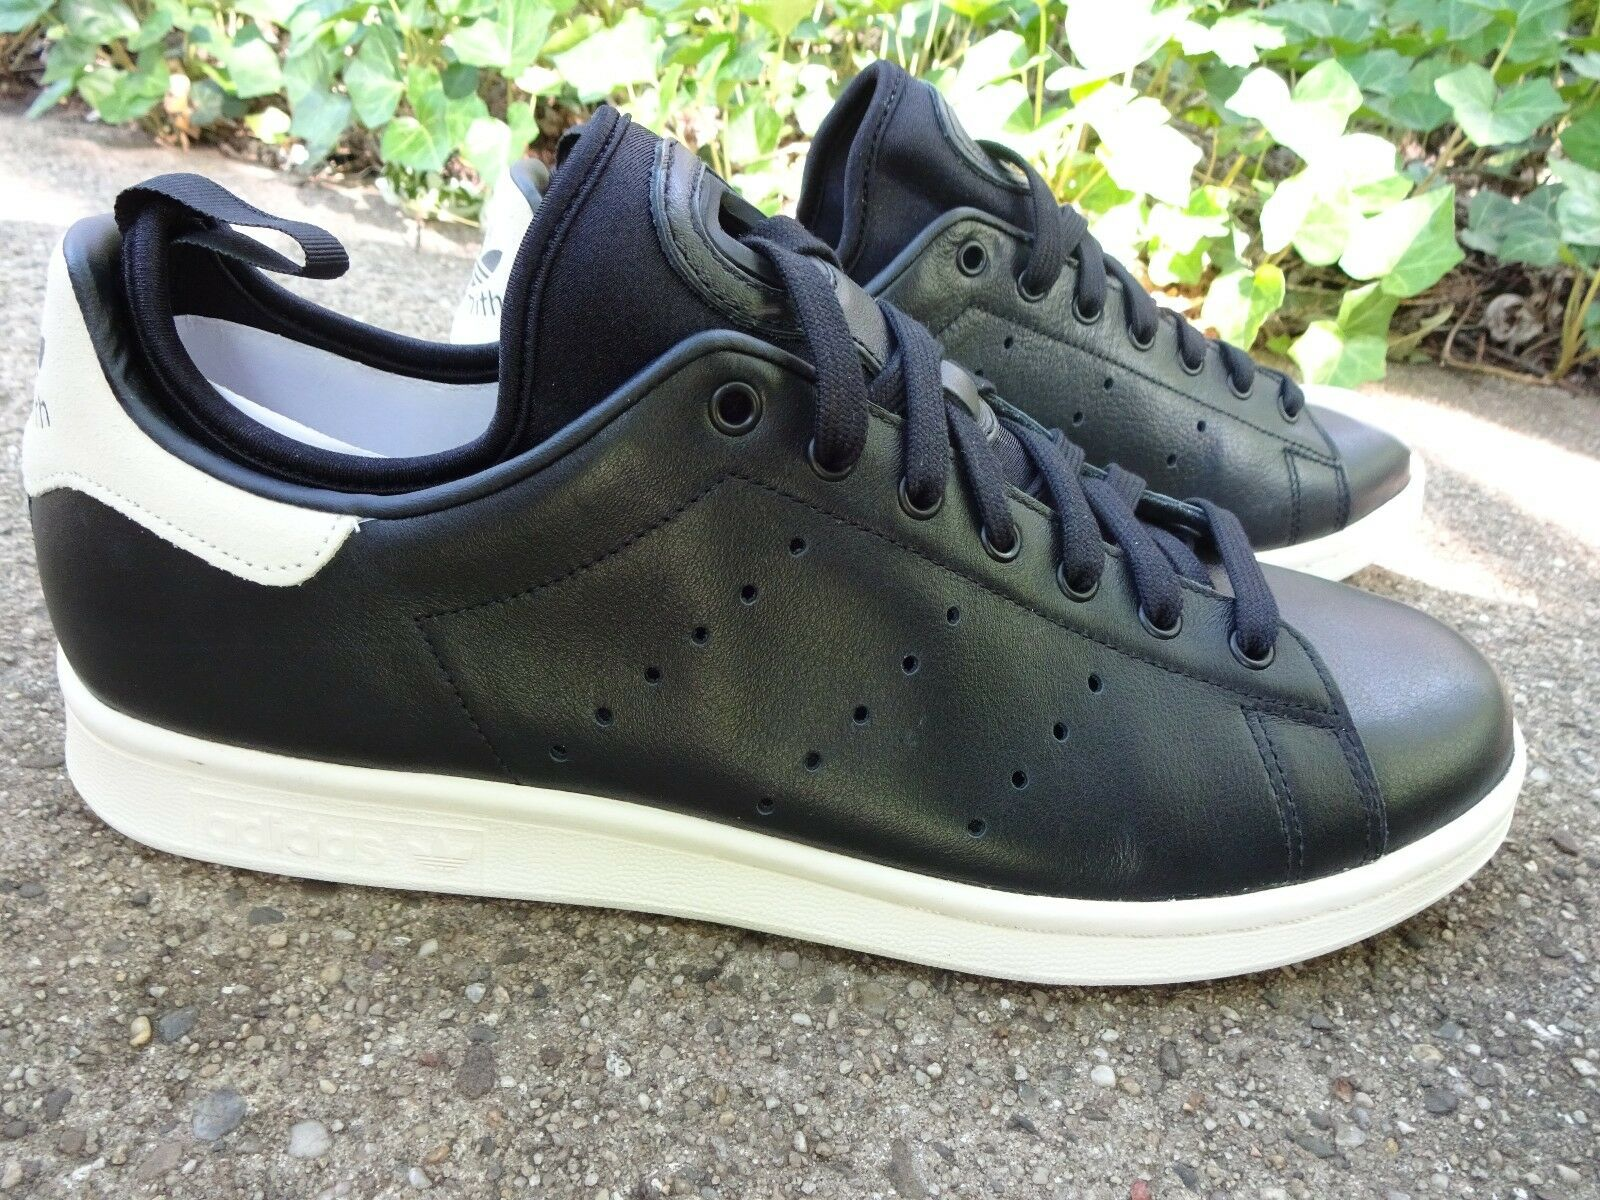 Adidas Stan Smith Update  black Hombre  zapatos  Update zapatillas trainers B25849 5bb6b7